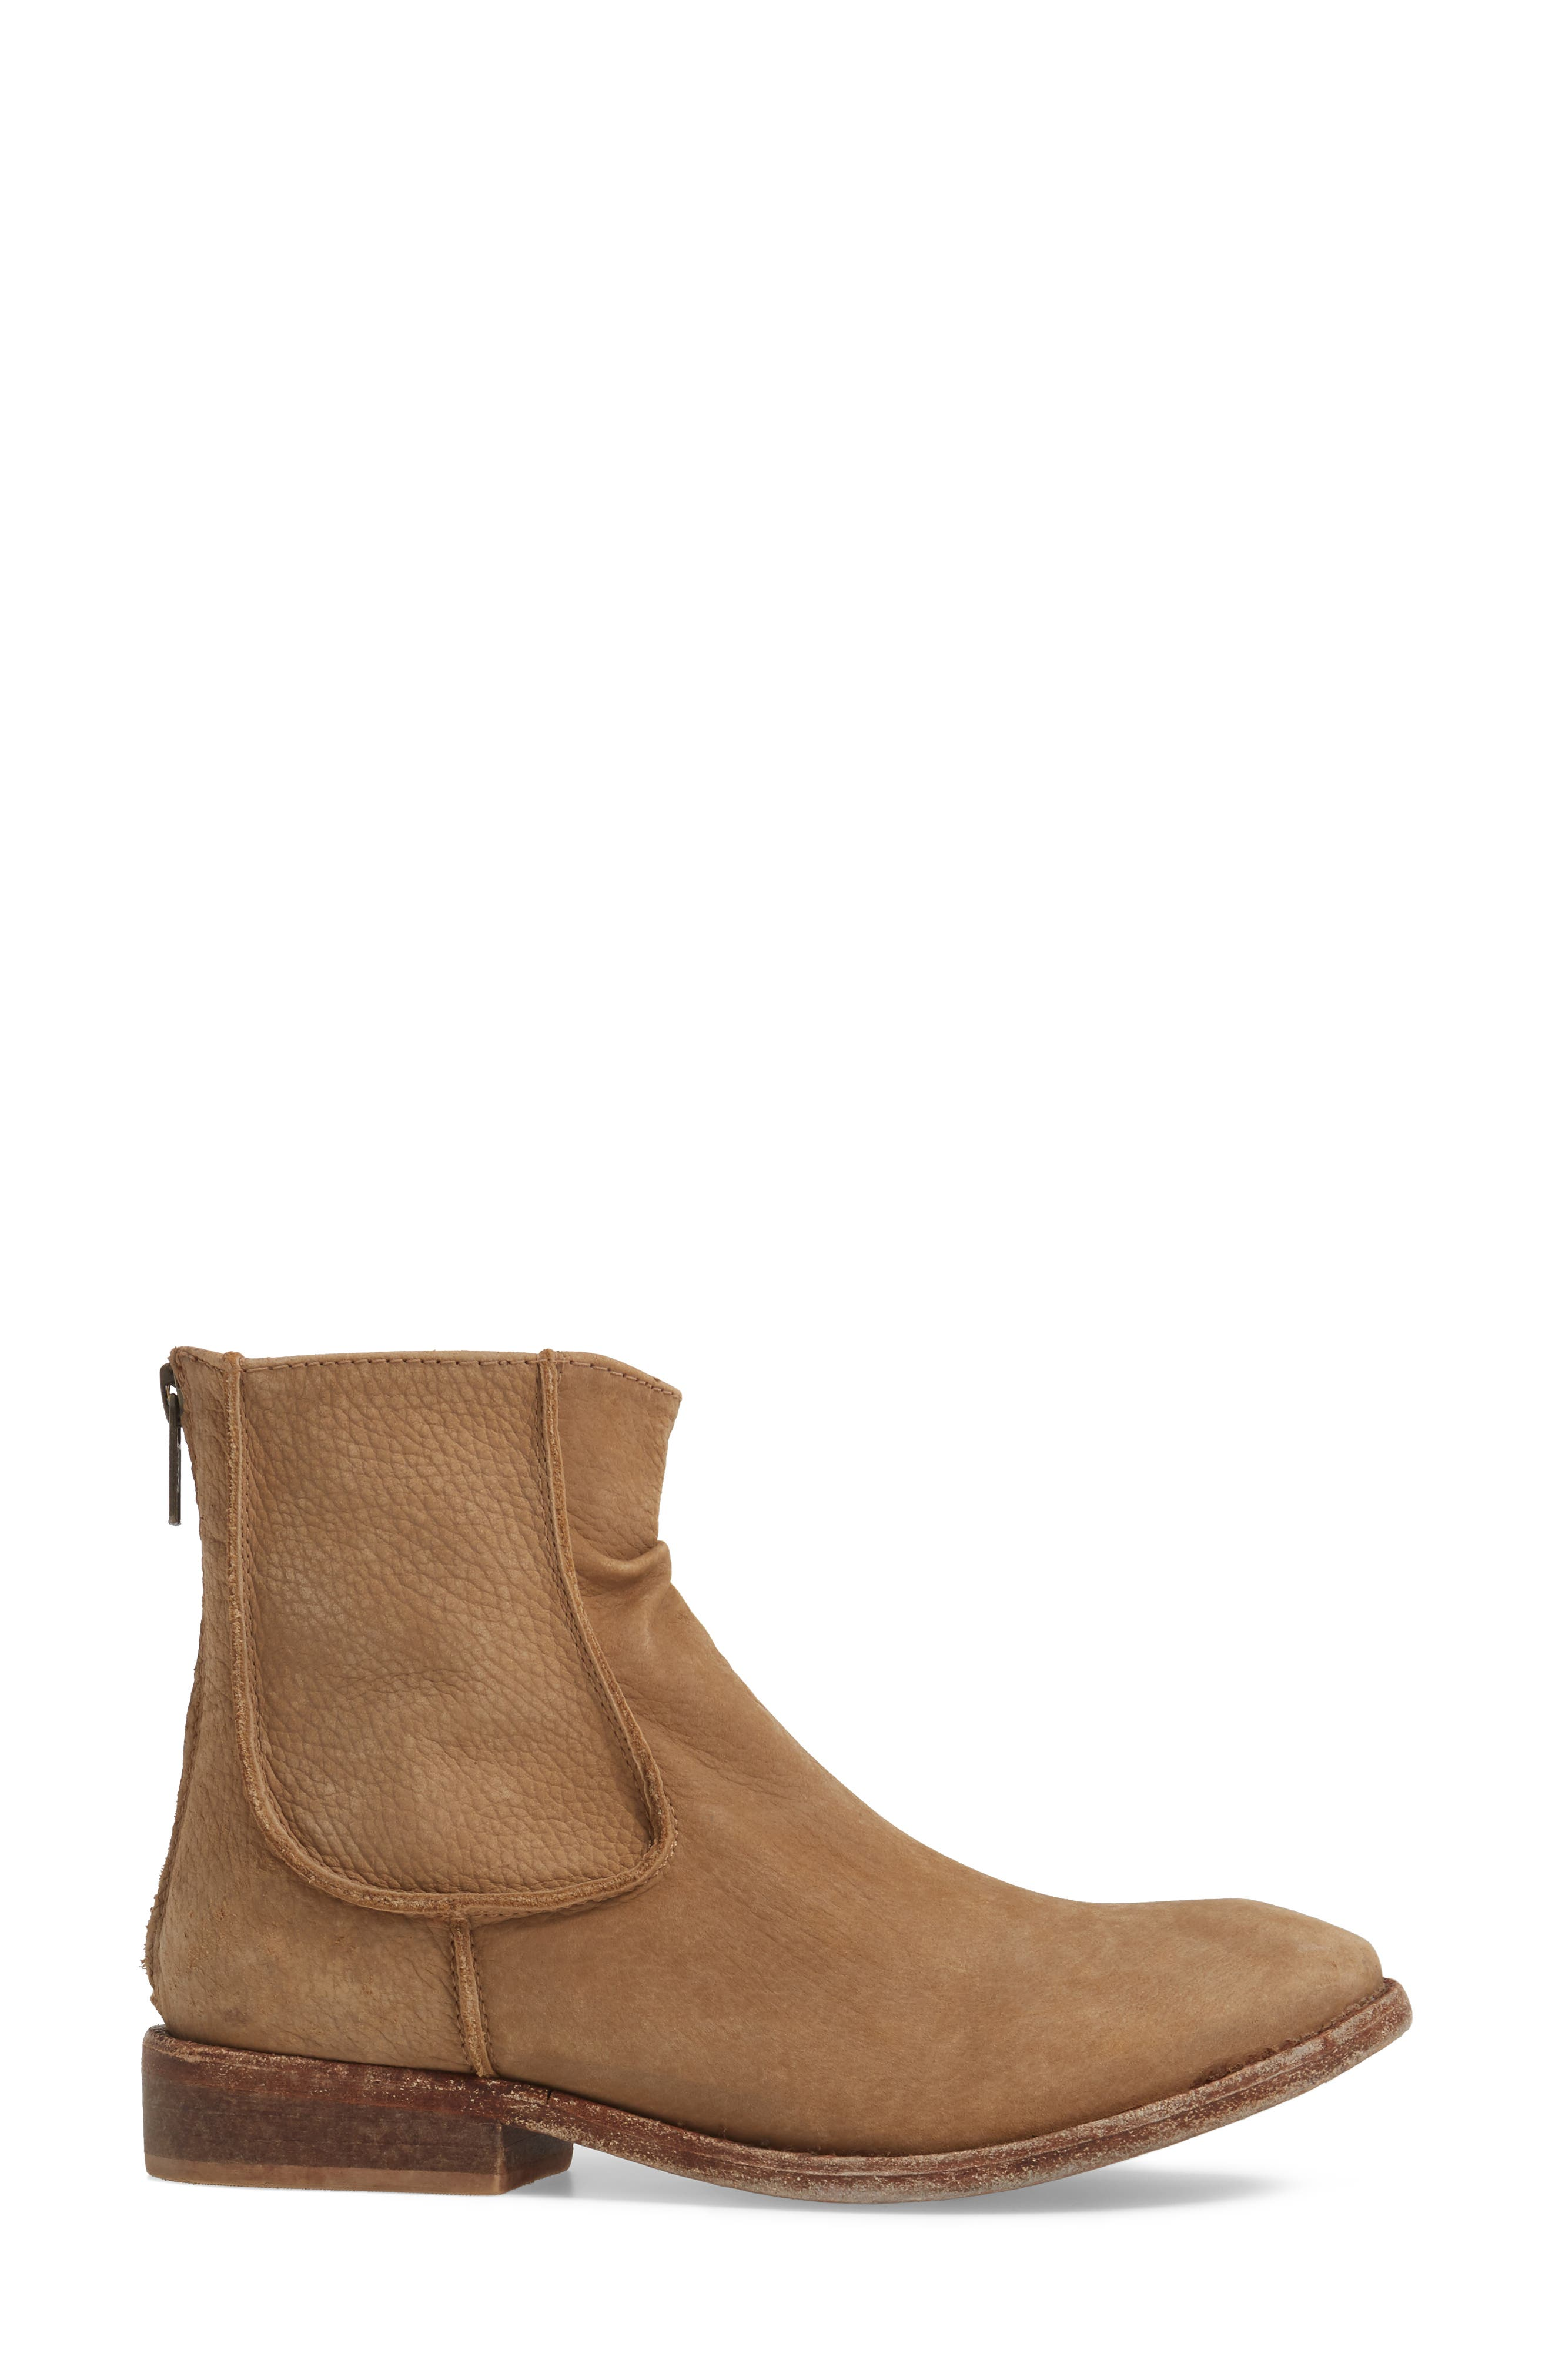 'Gerald' Distressed Bootie,                             Alternate thumbnail 3, color,                             Natural Leather